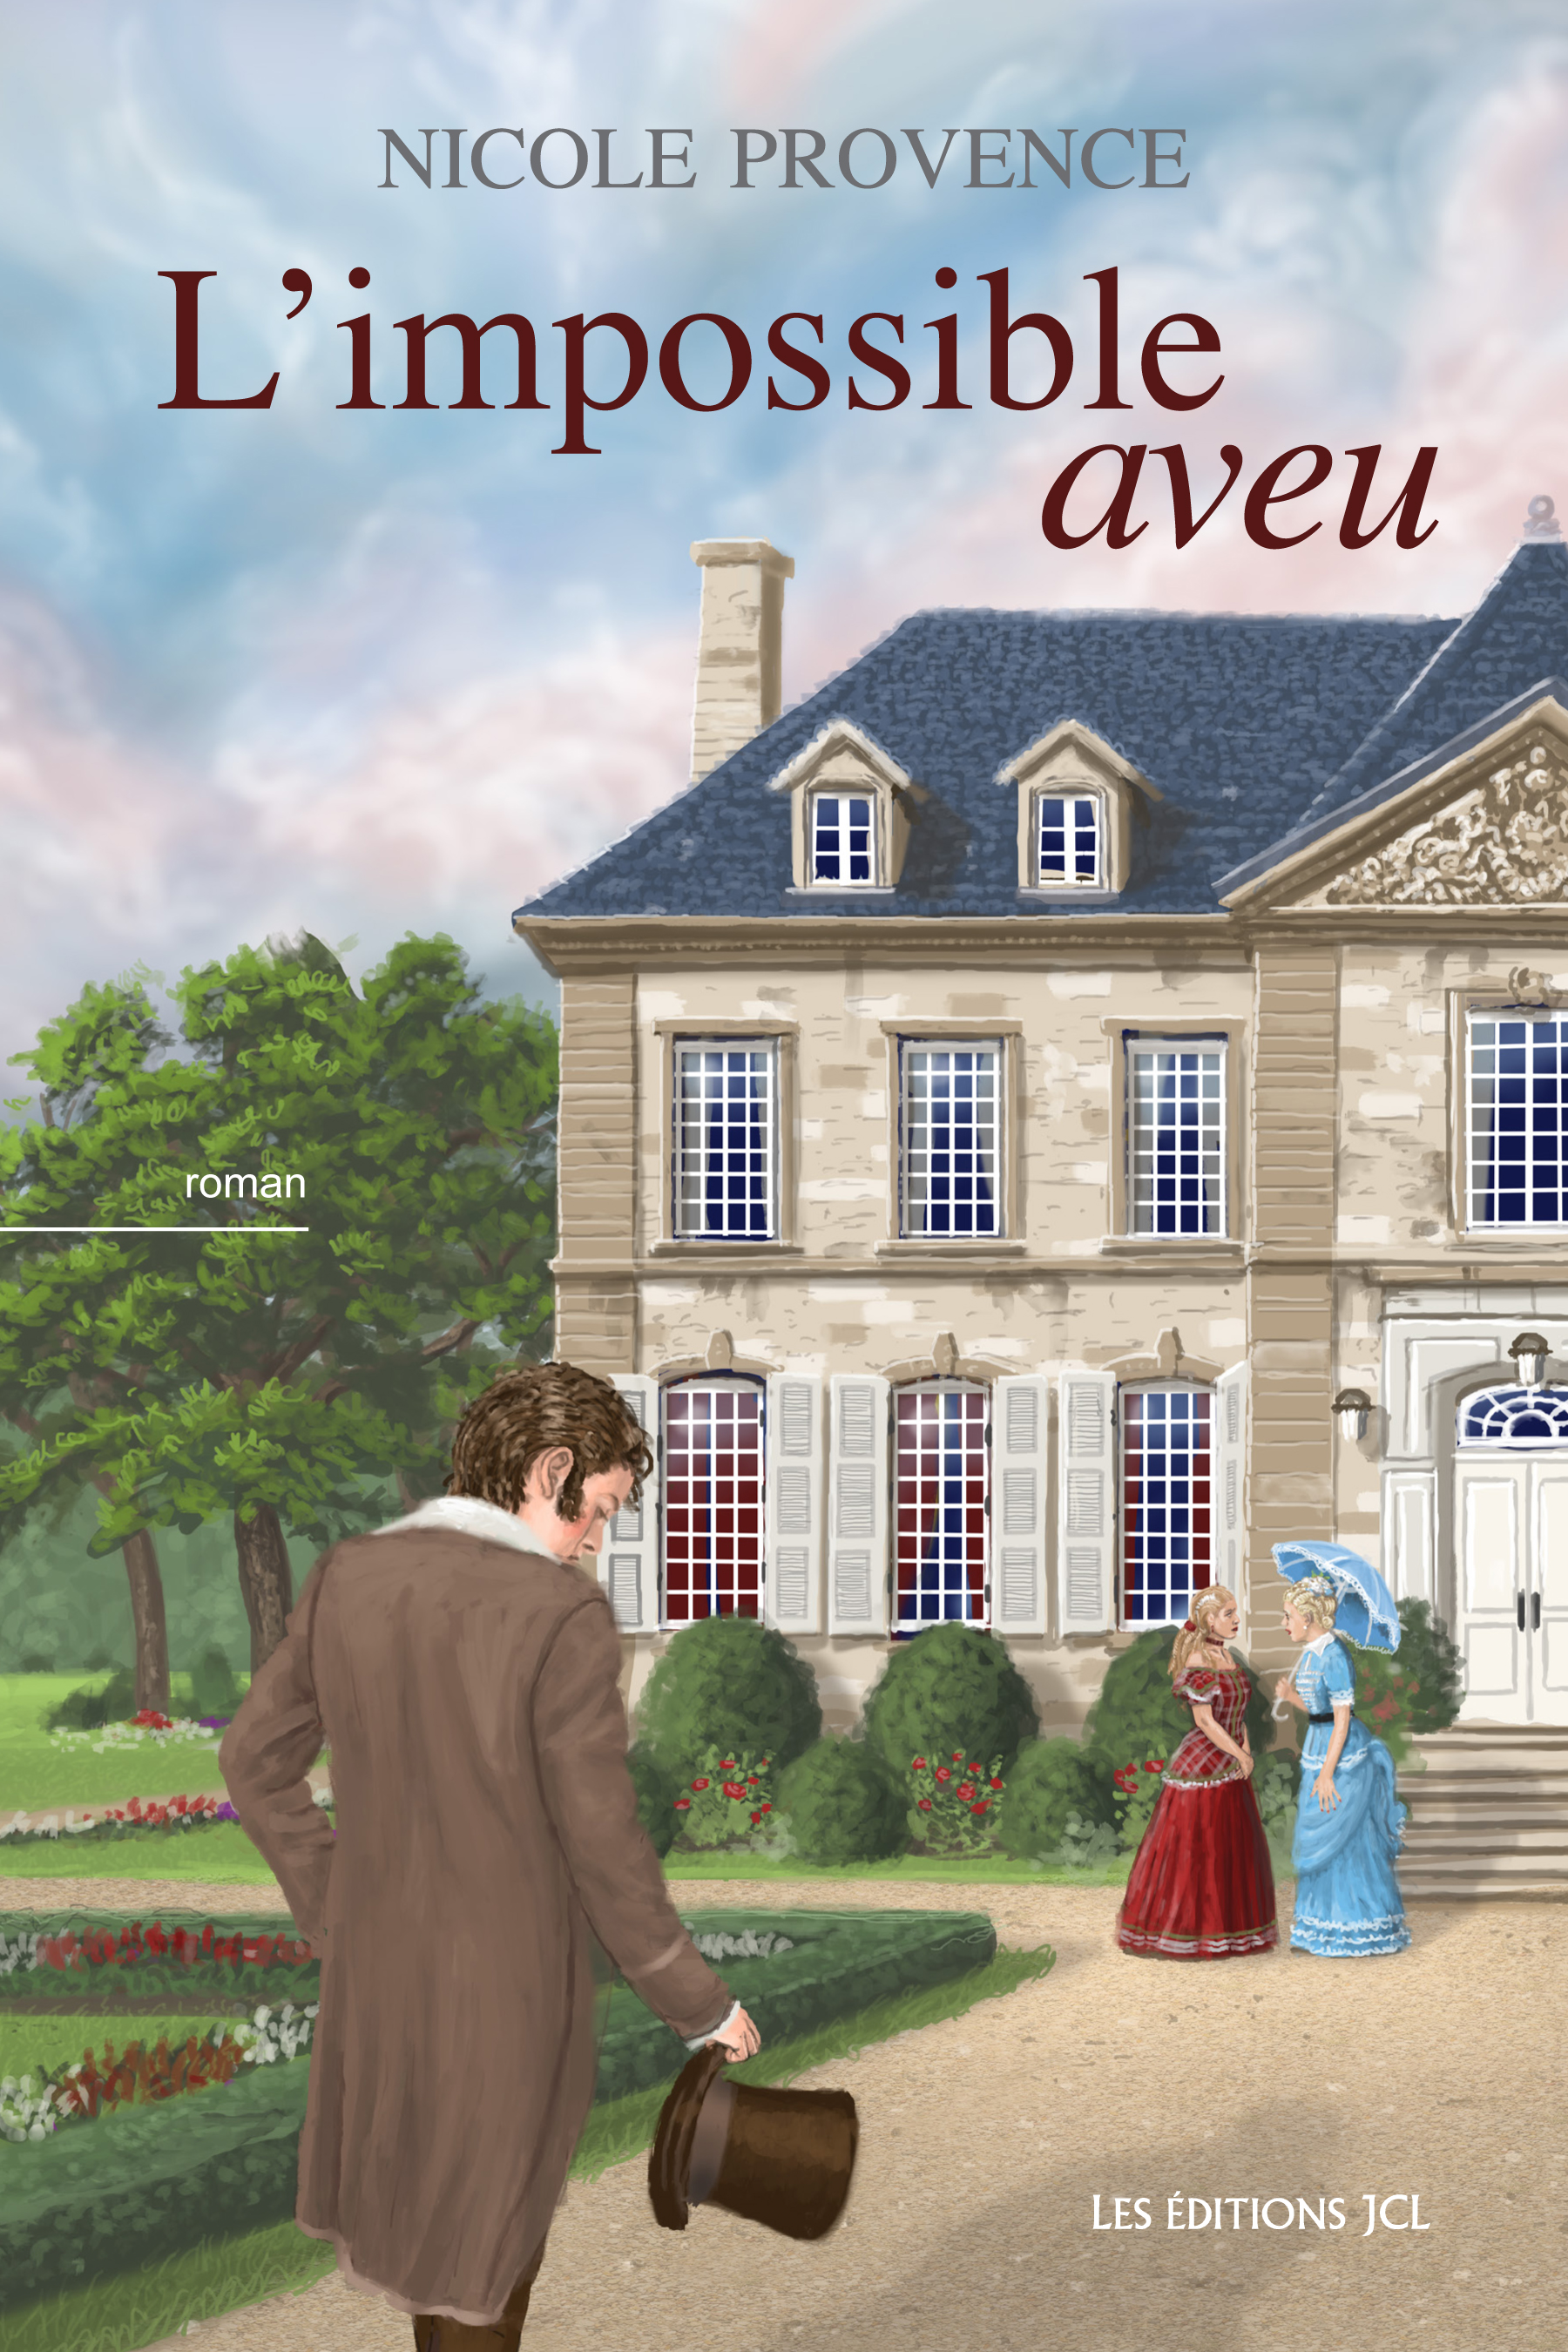 L'impossible aveu